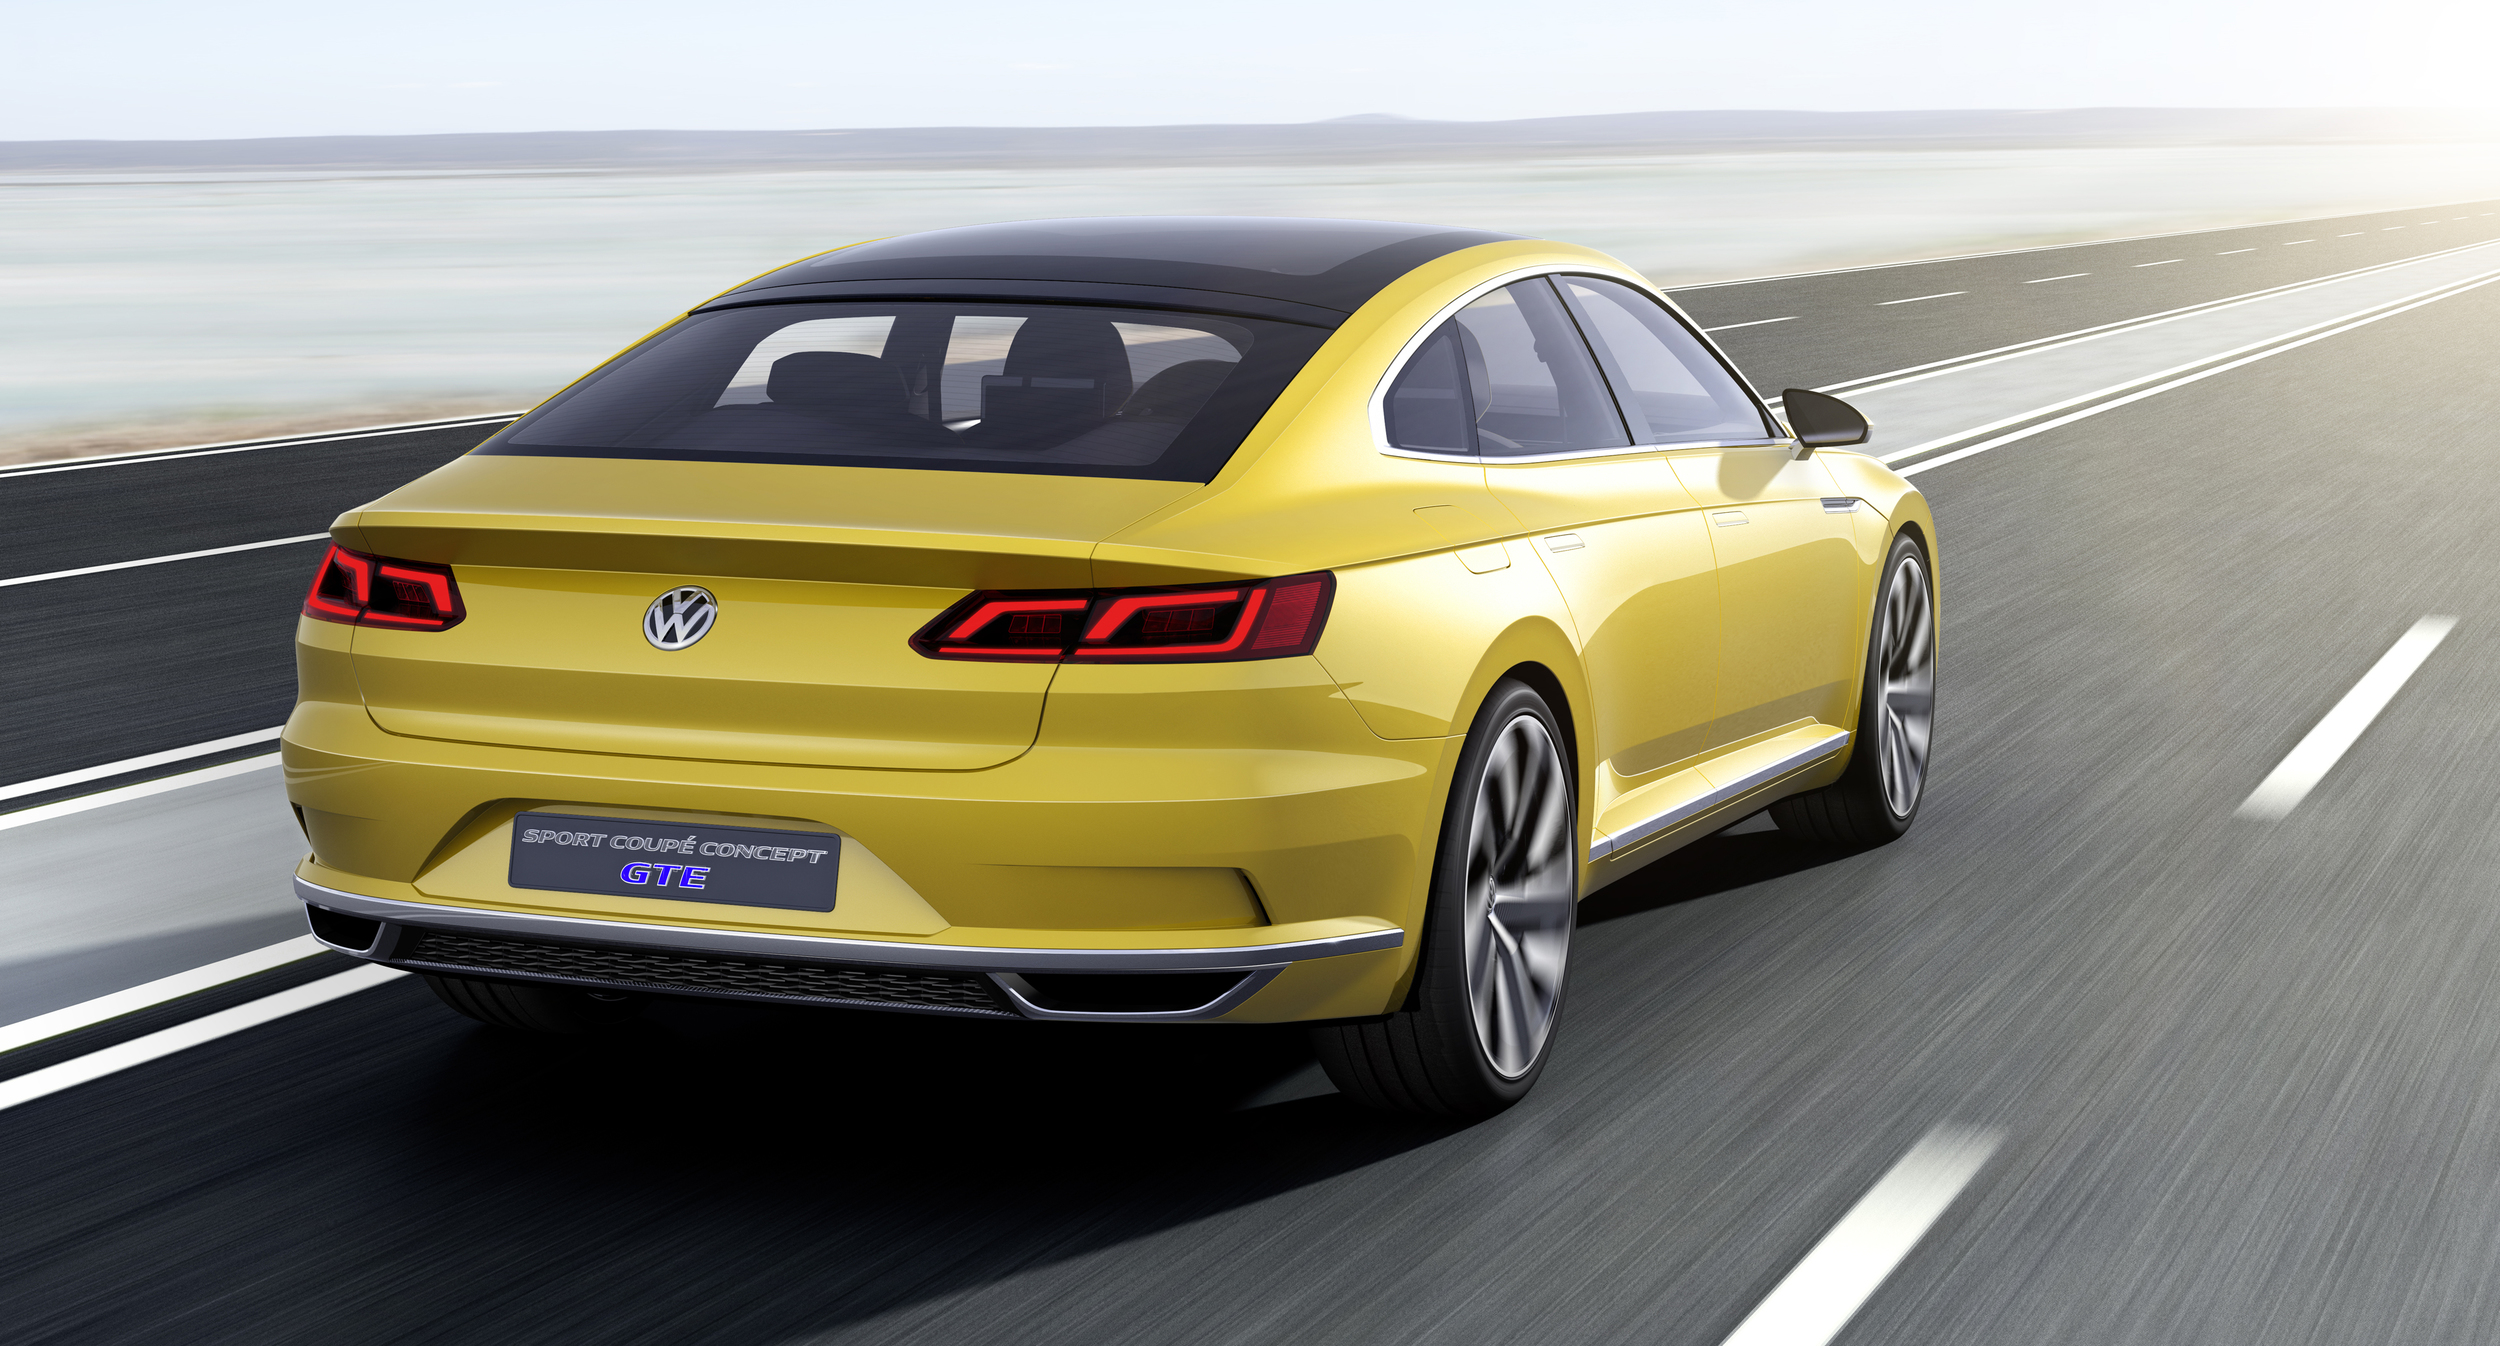 vw-sport-coupe-concept-gte-ext-011-1